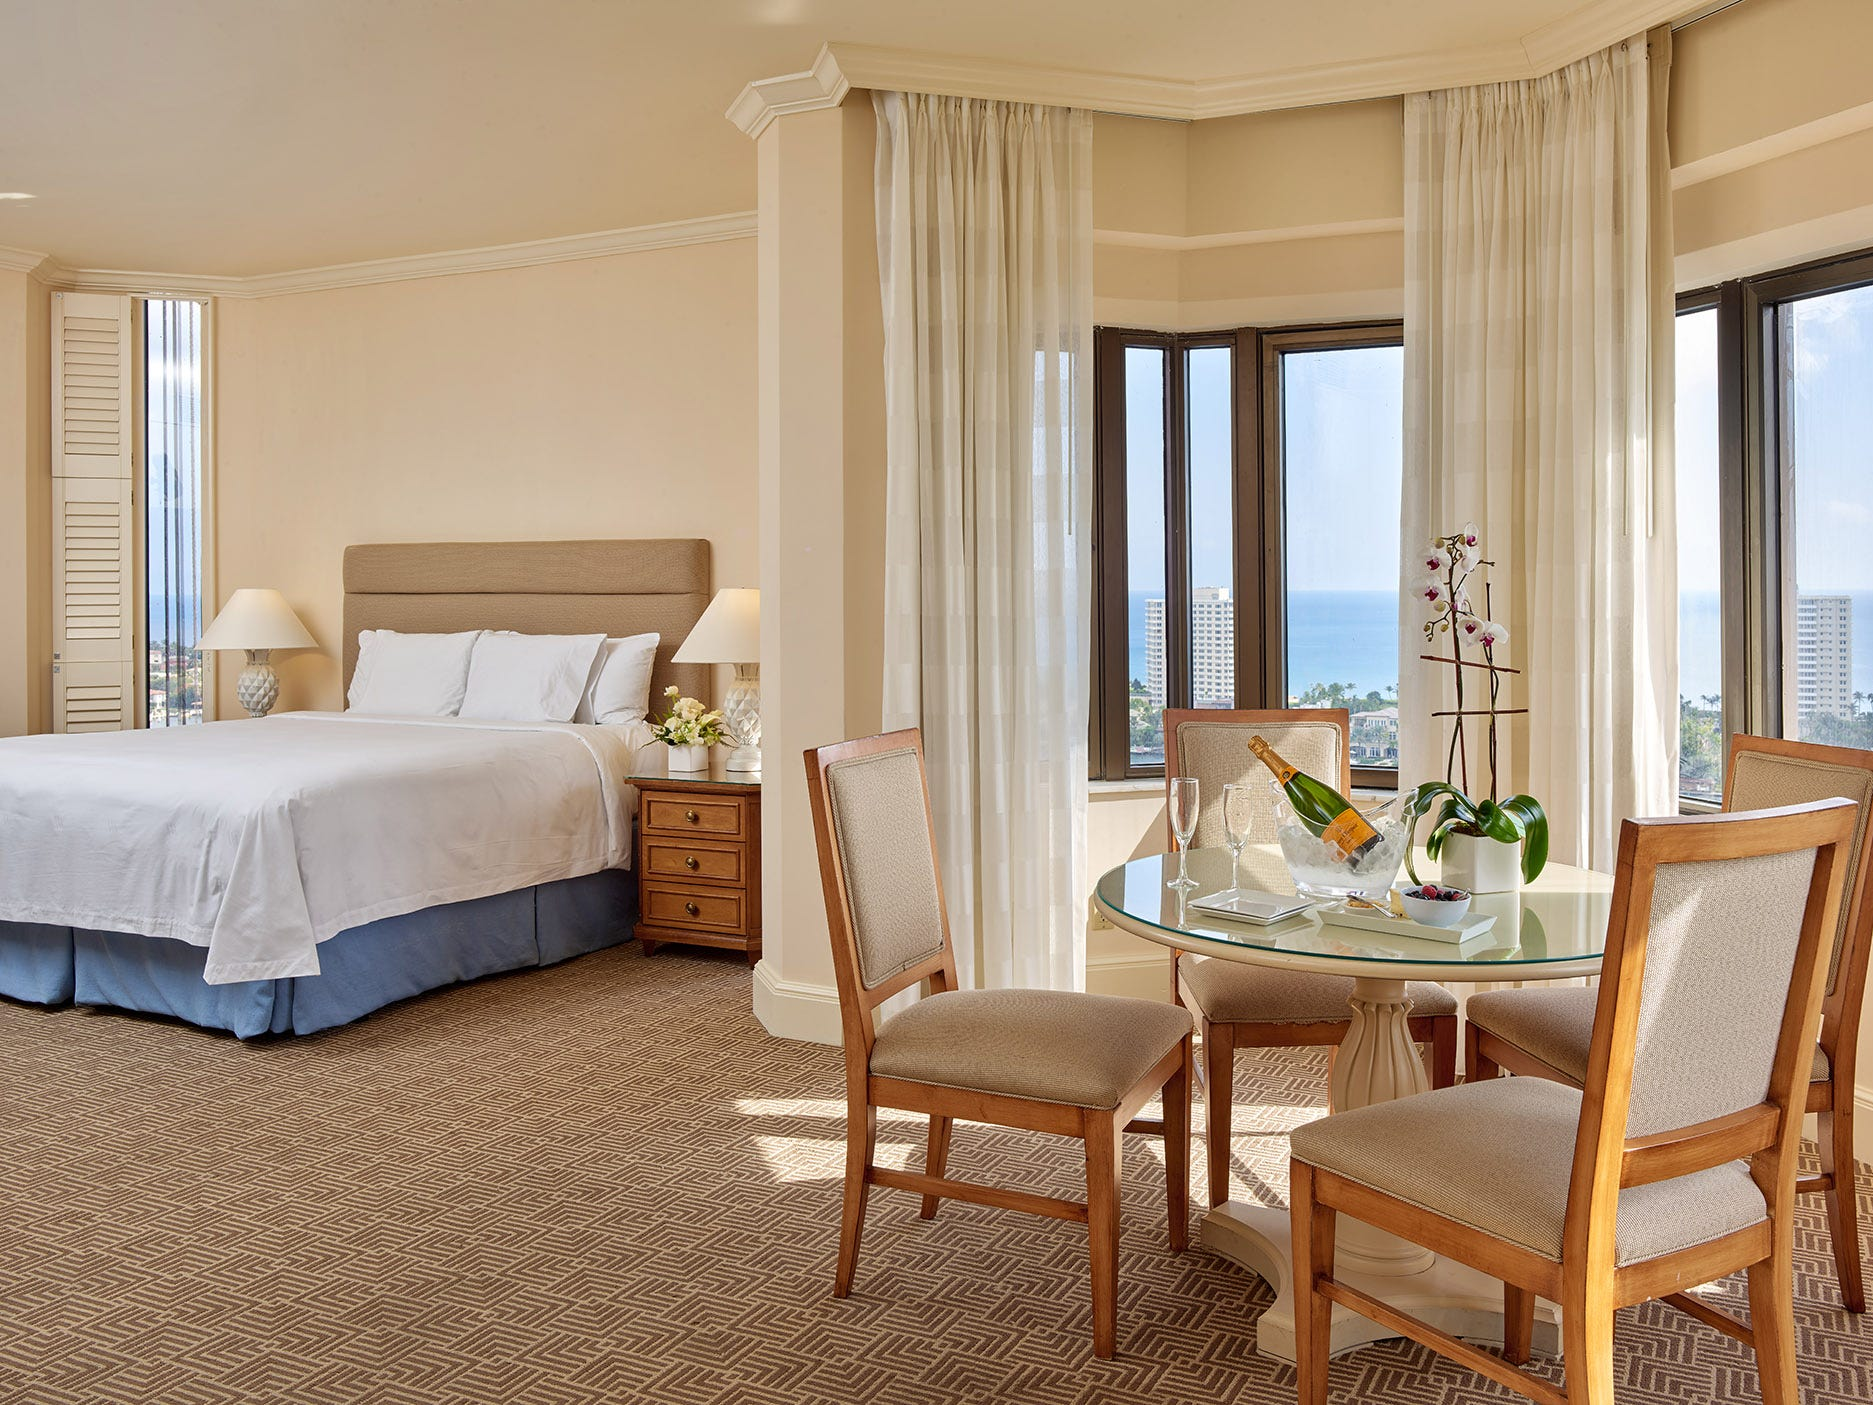 A guest room in The Tower, part of Boca Raton Resort & Club.